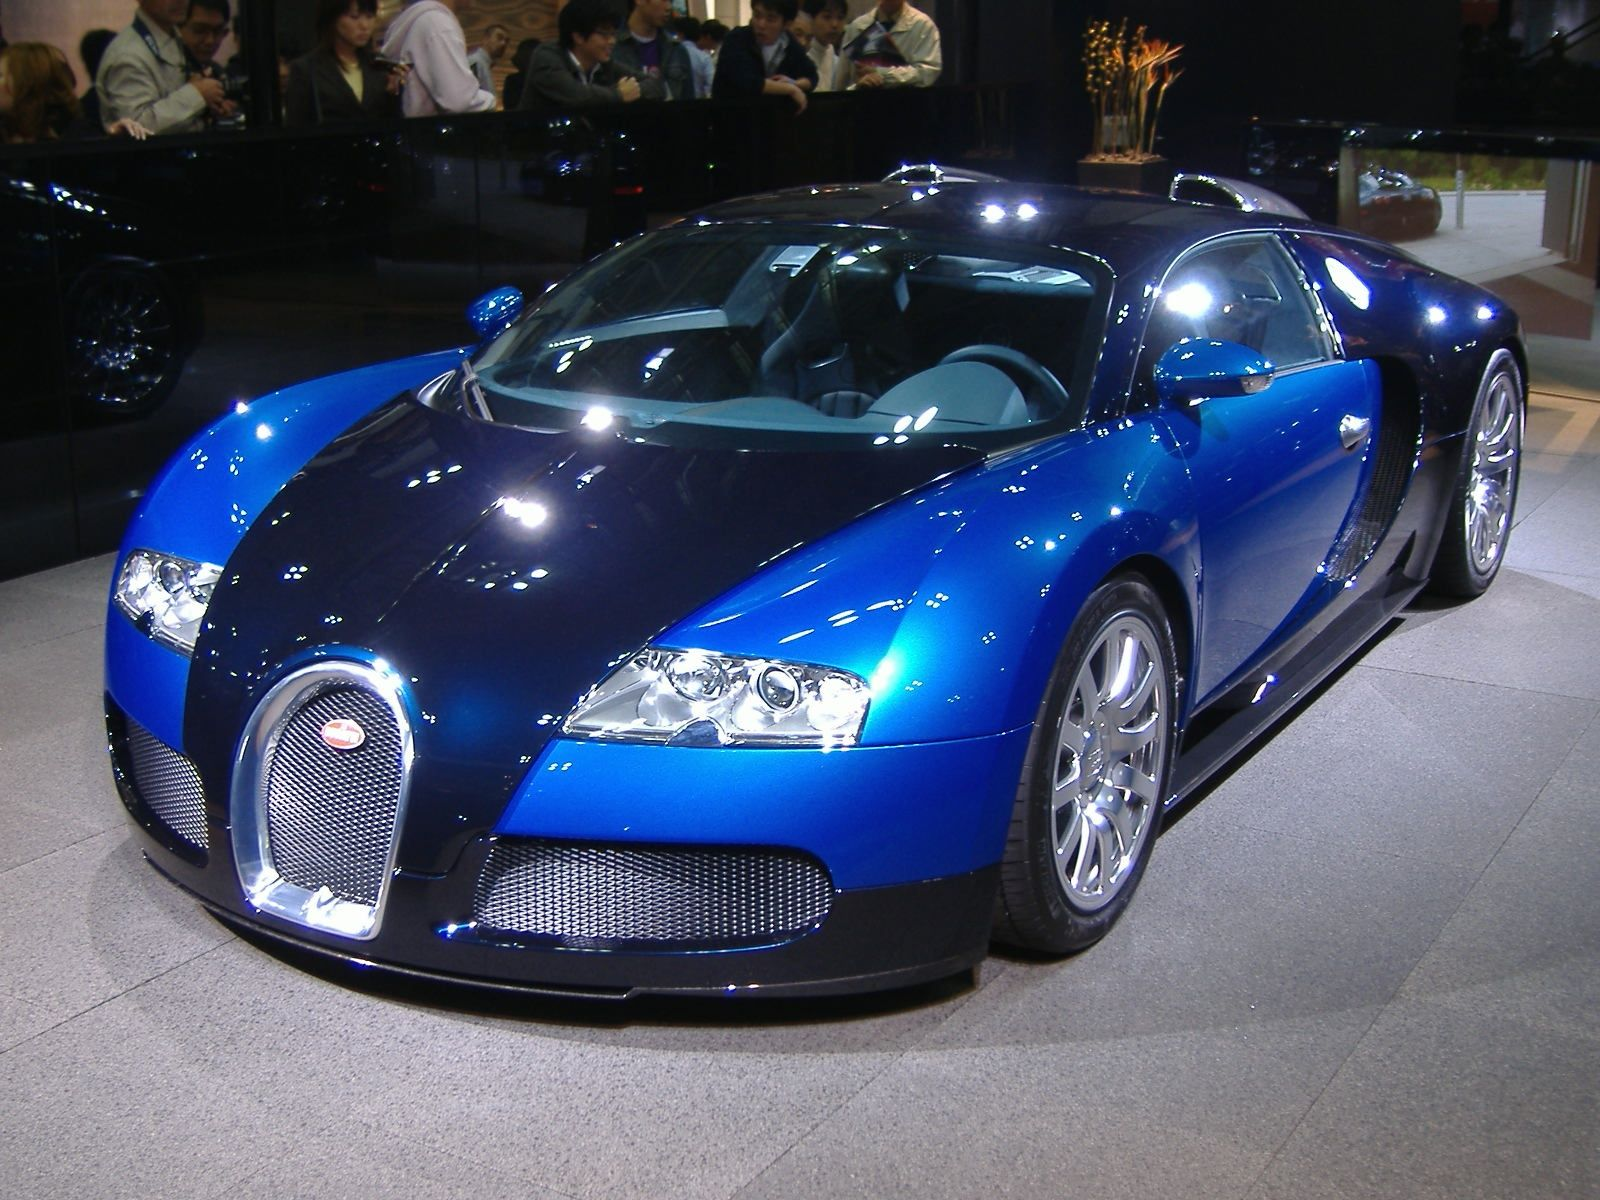 6227c9fead3878bad3246541466d1219 Cool Bugatti Veyron Price In Uae 2015 Cars Trend